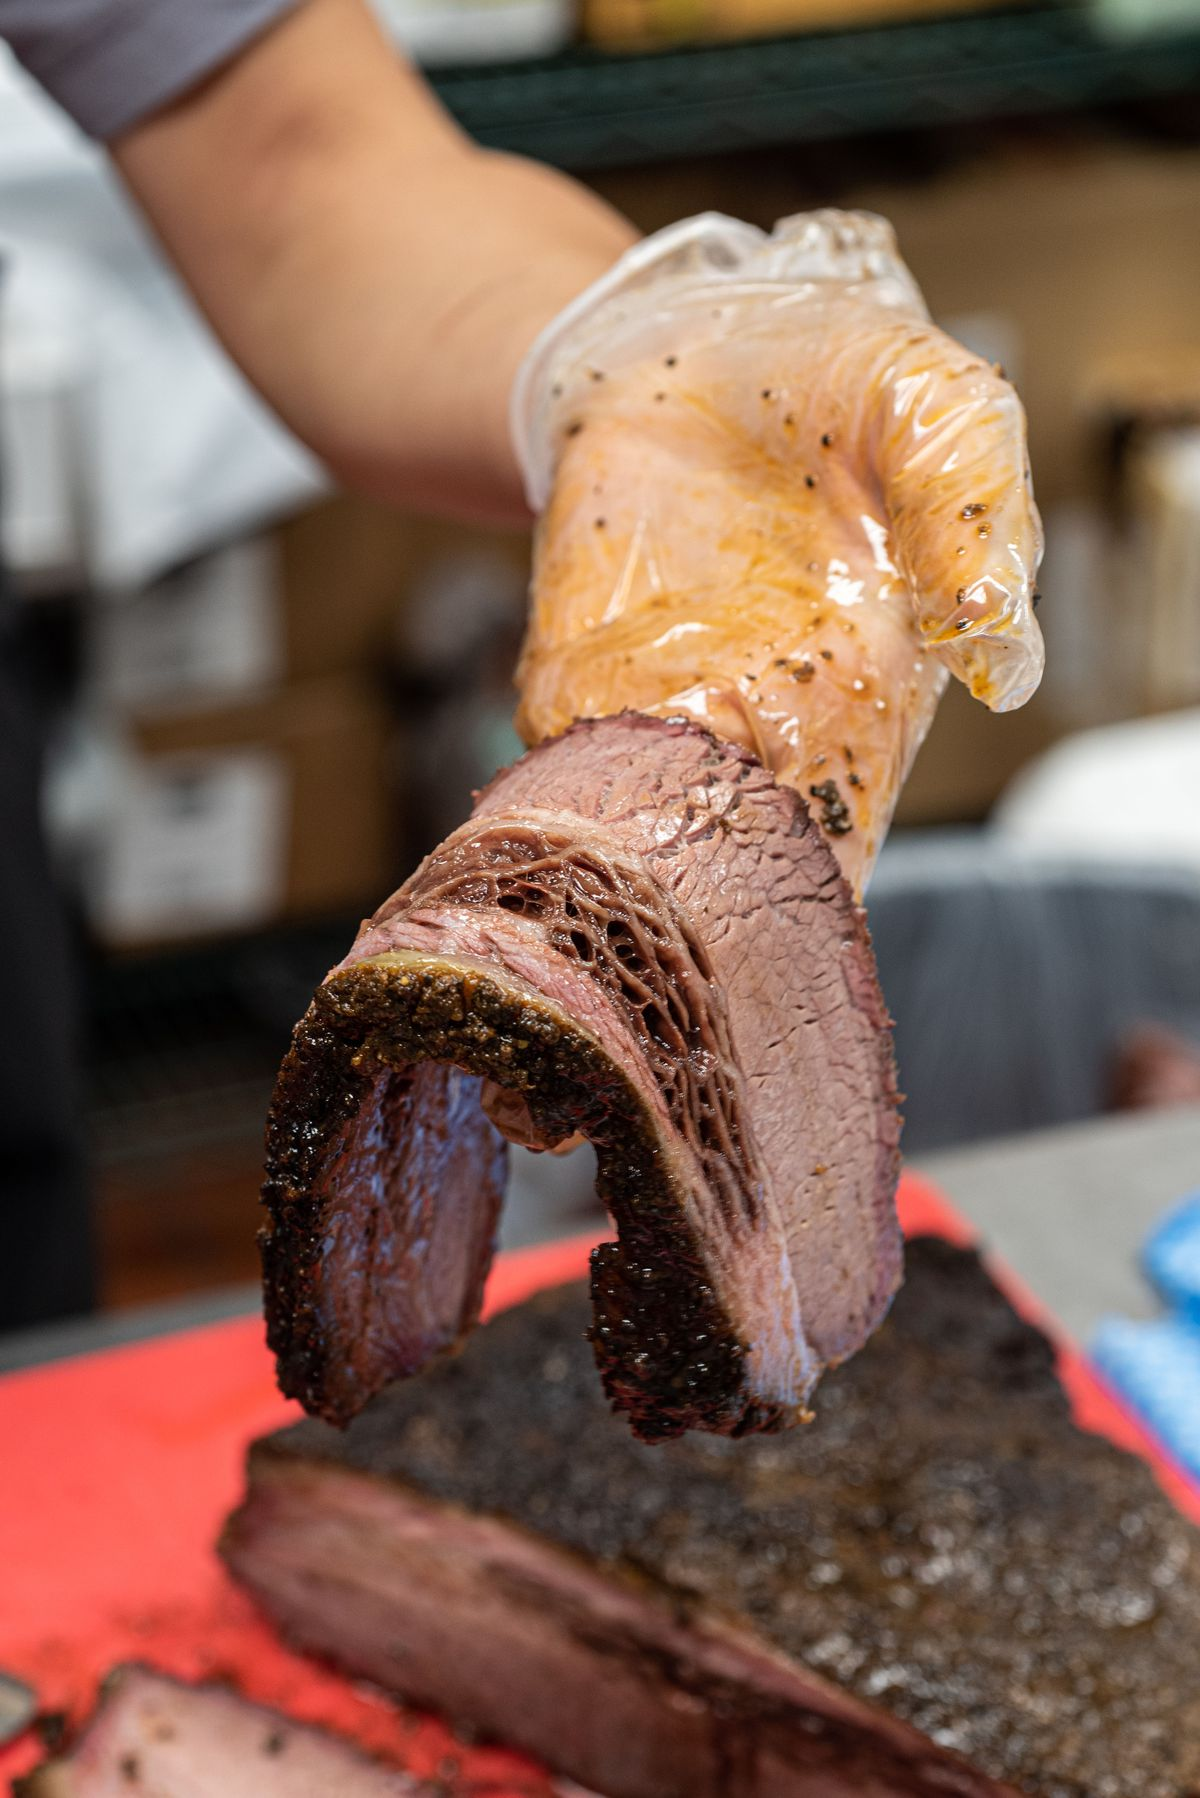 A thick slice of brisket bending over a gloved hand.